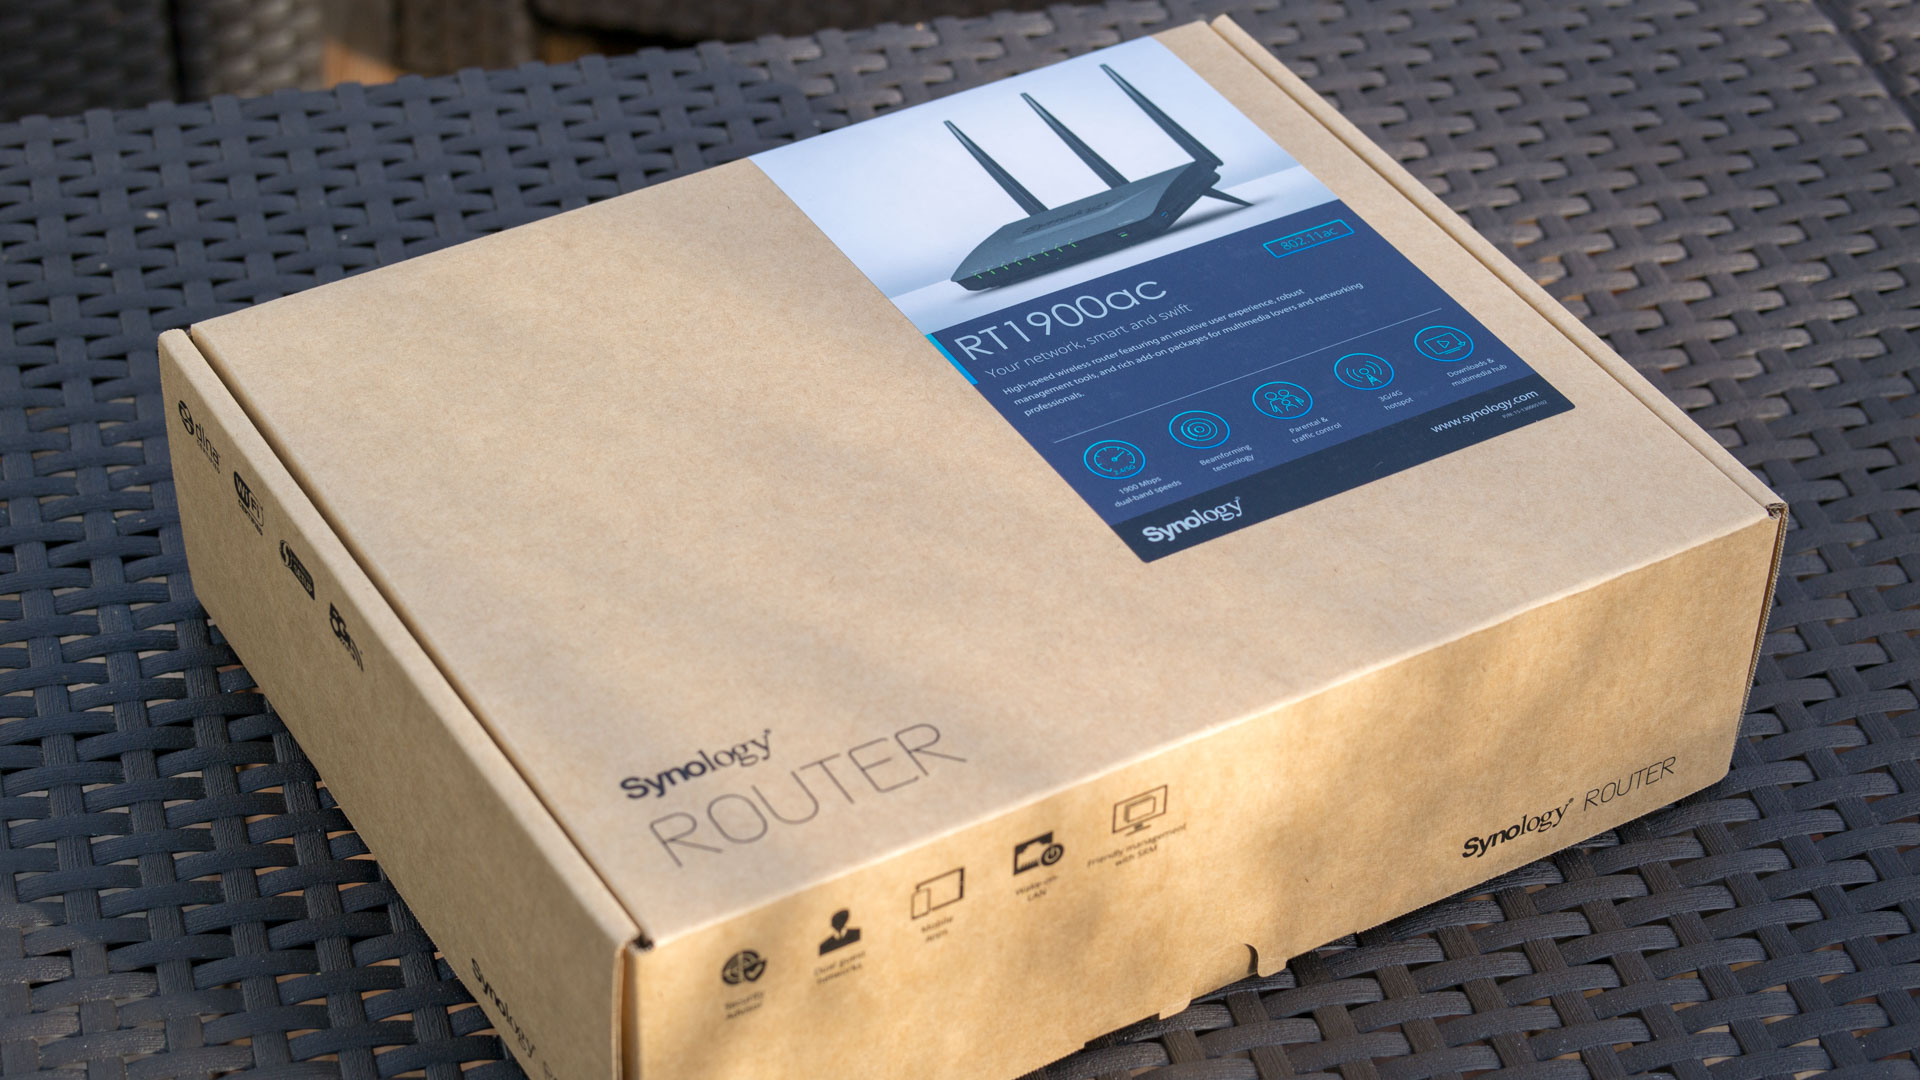 synologys erster wlan router im test synology rt1900ac. Black Bedroom Furniture Sets. Home Design Ideas